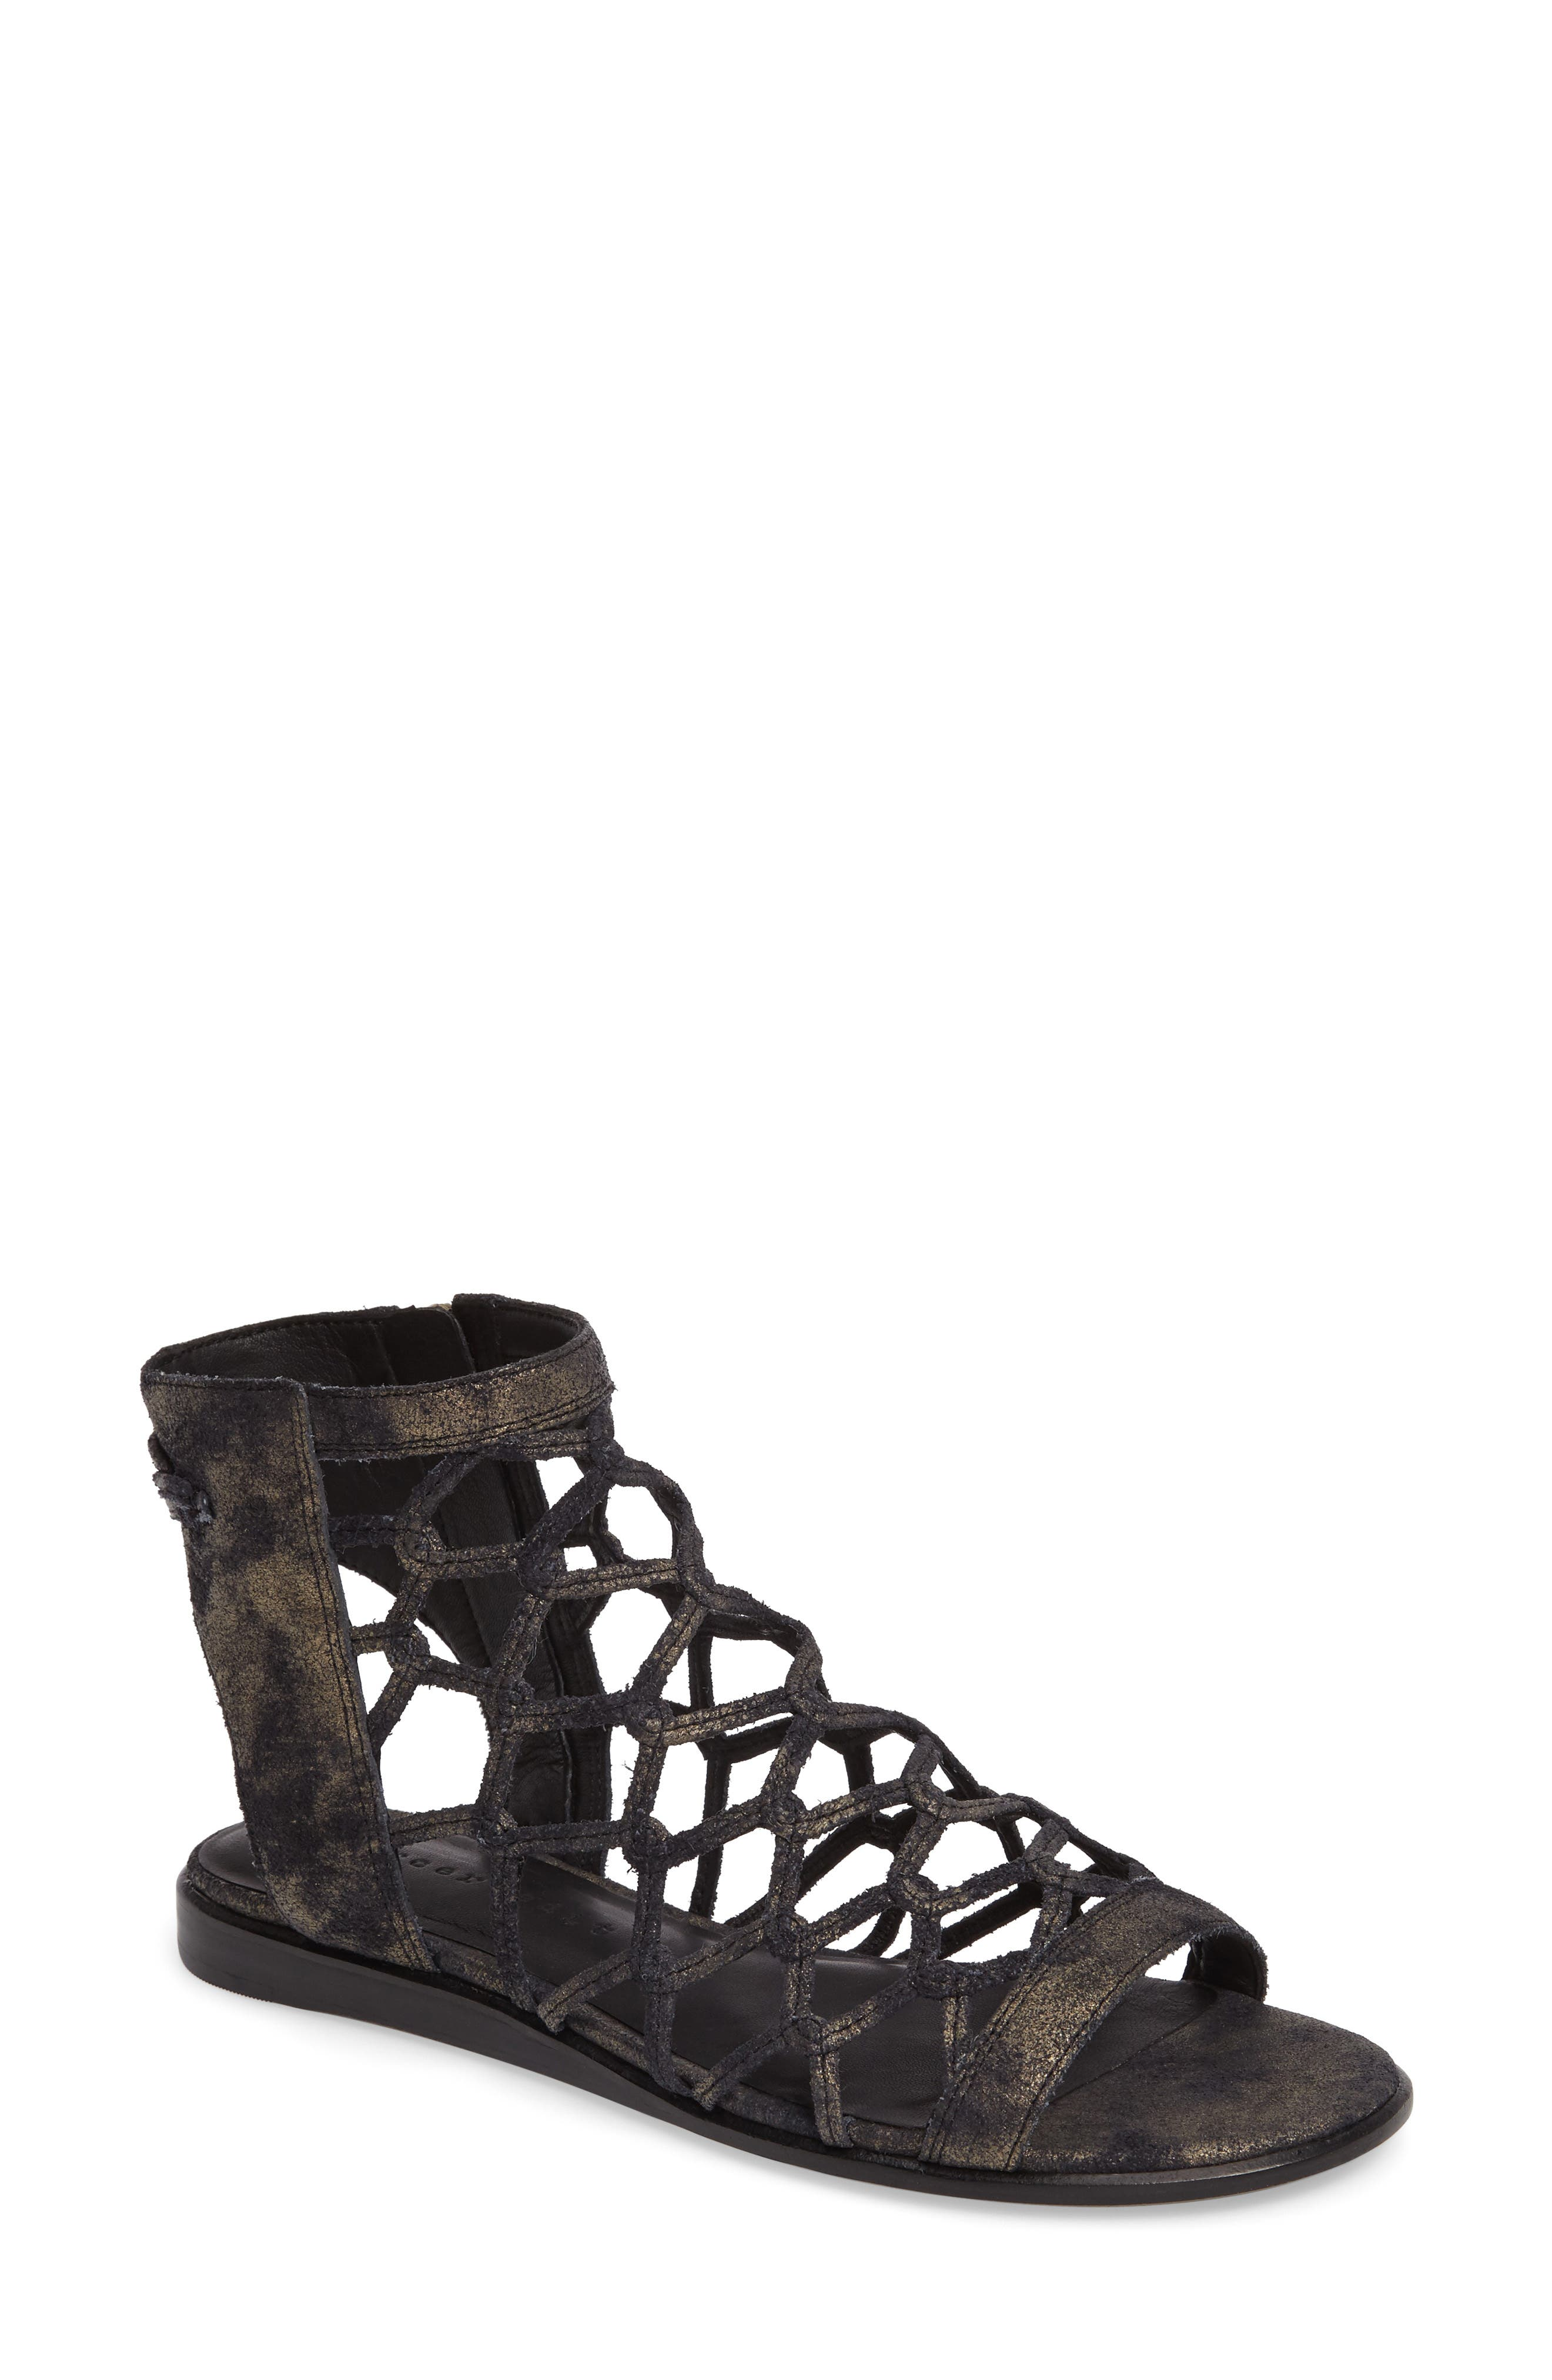 Mercer Edit Ybother Cage Sandal (Women)